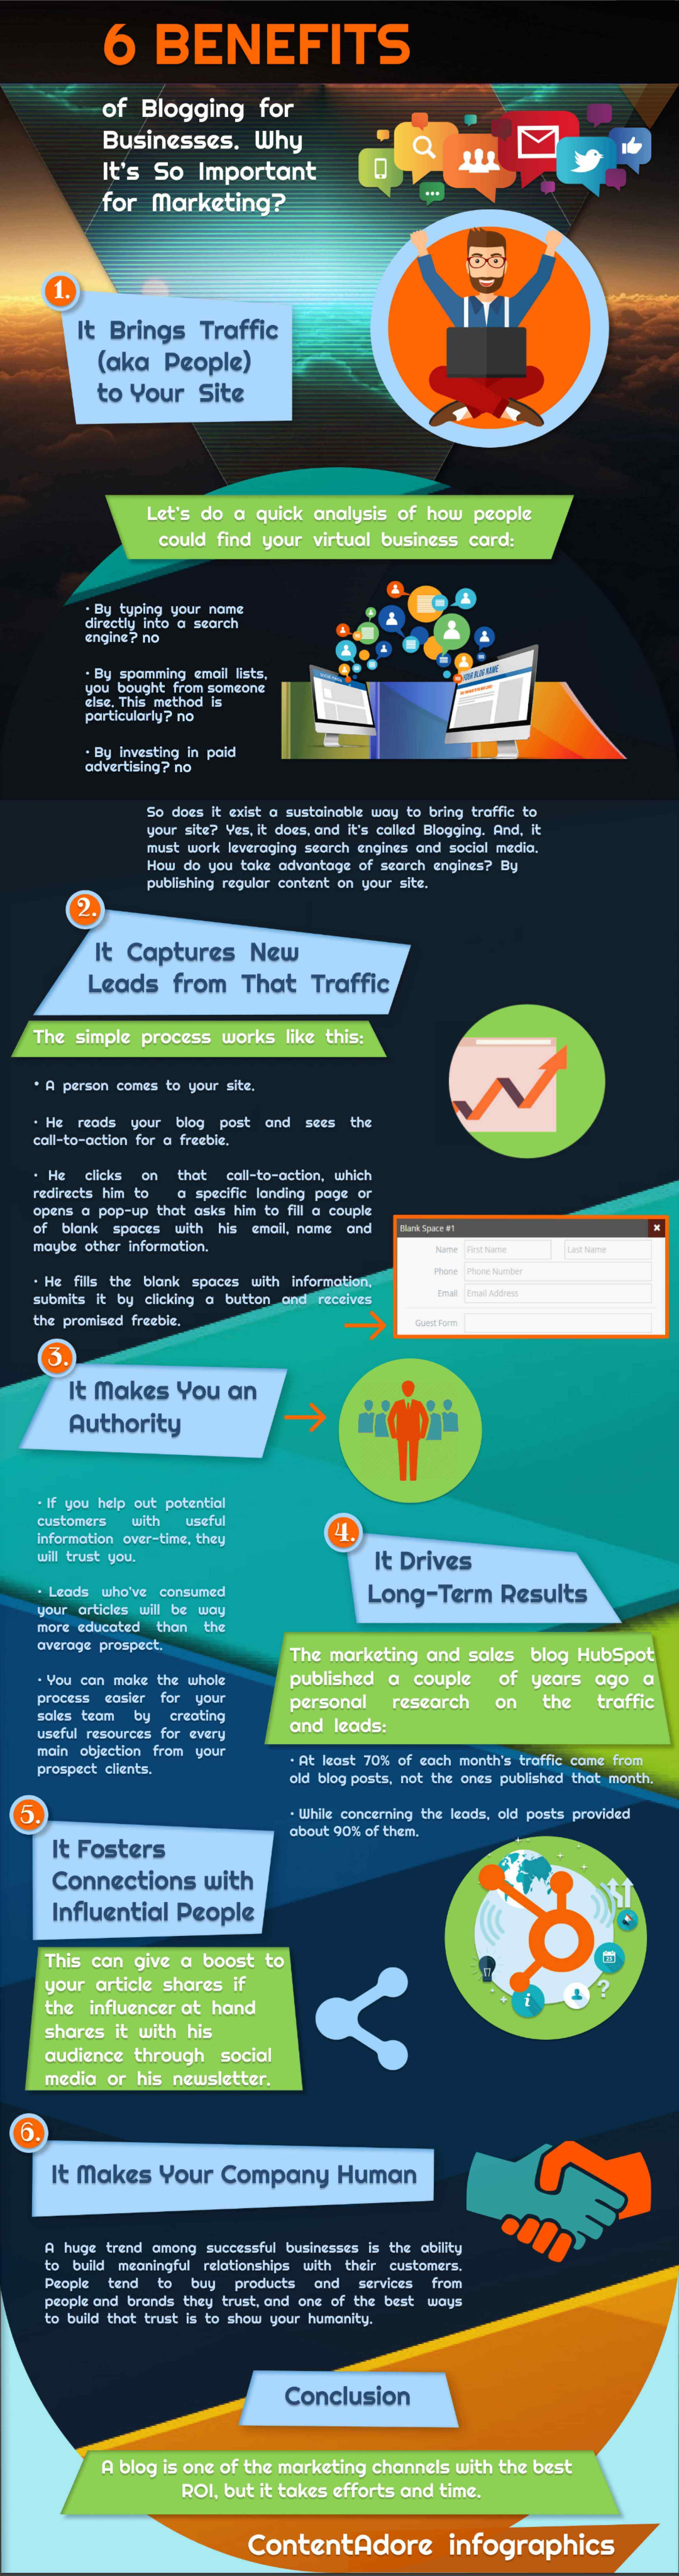 Image of 6 Benefits of Blogging for Business - ContentAdore Infographics